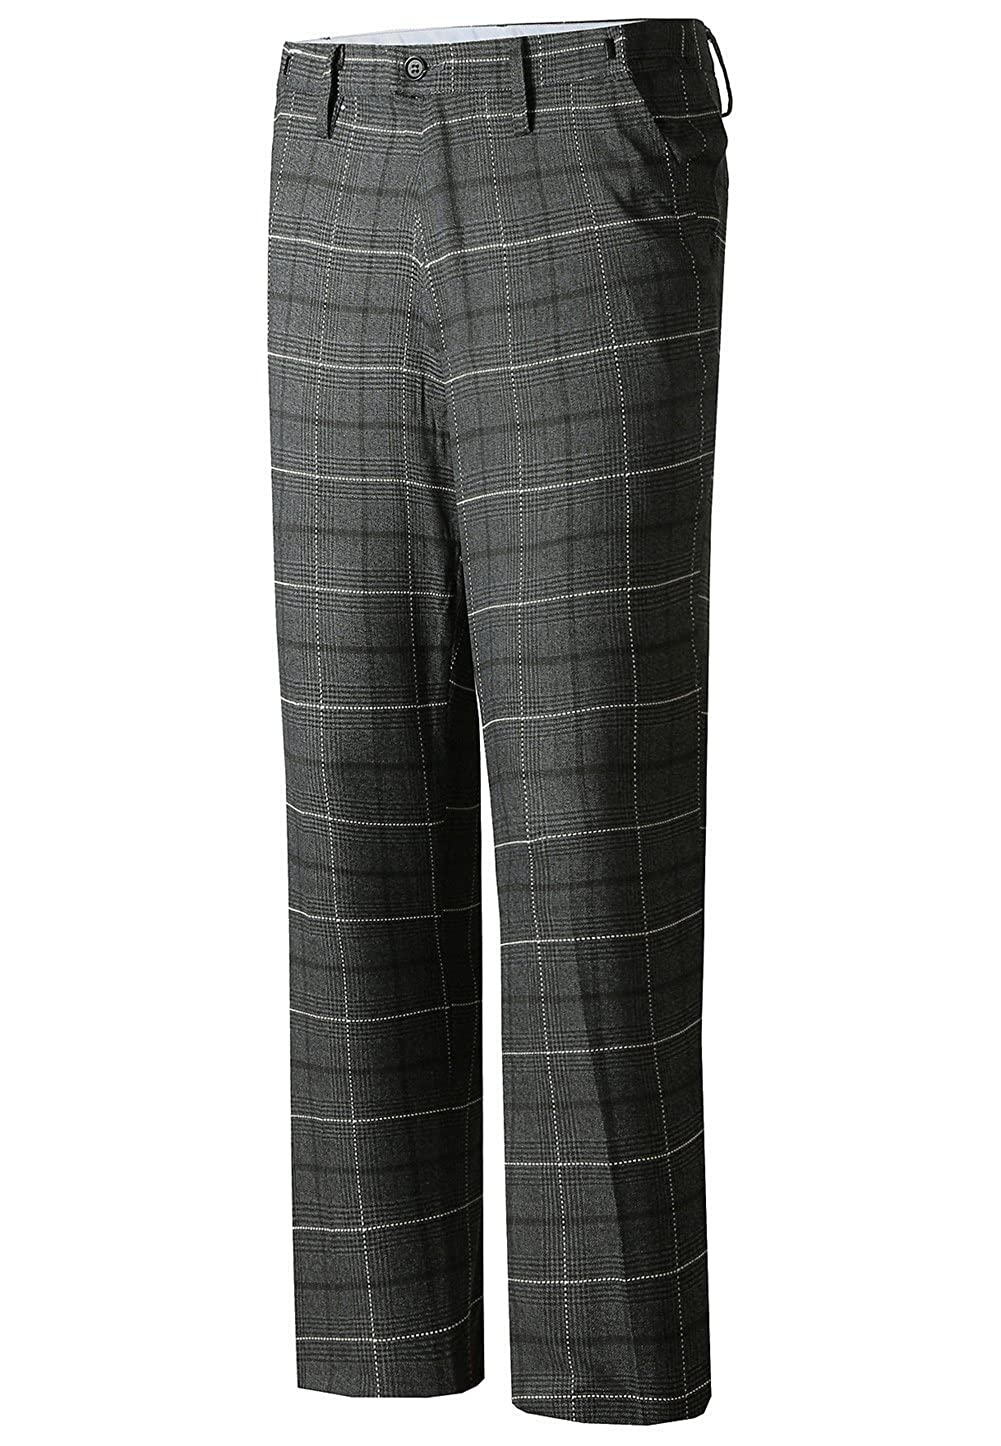 Hanayome Men's Plaid Modern Fit Flat Front Pattern Dress Pant Separate Trousers